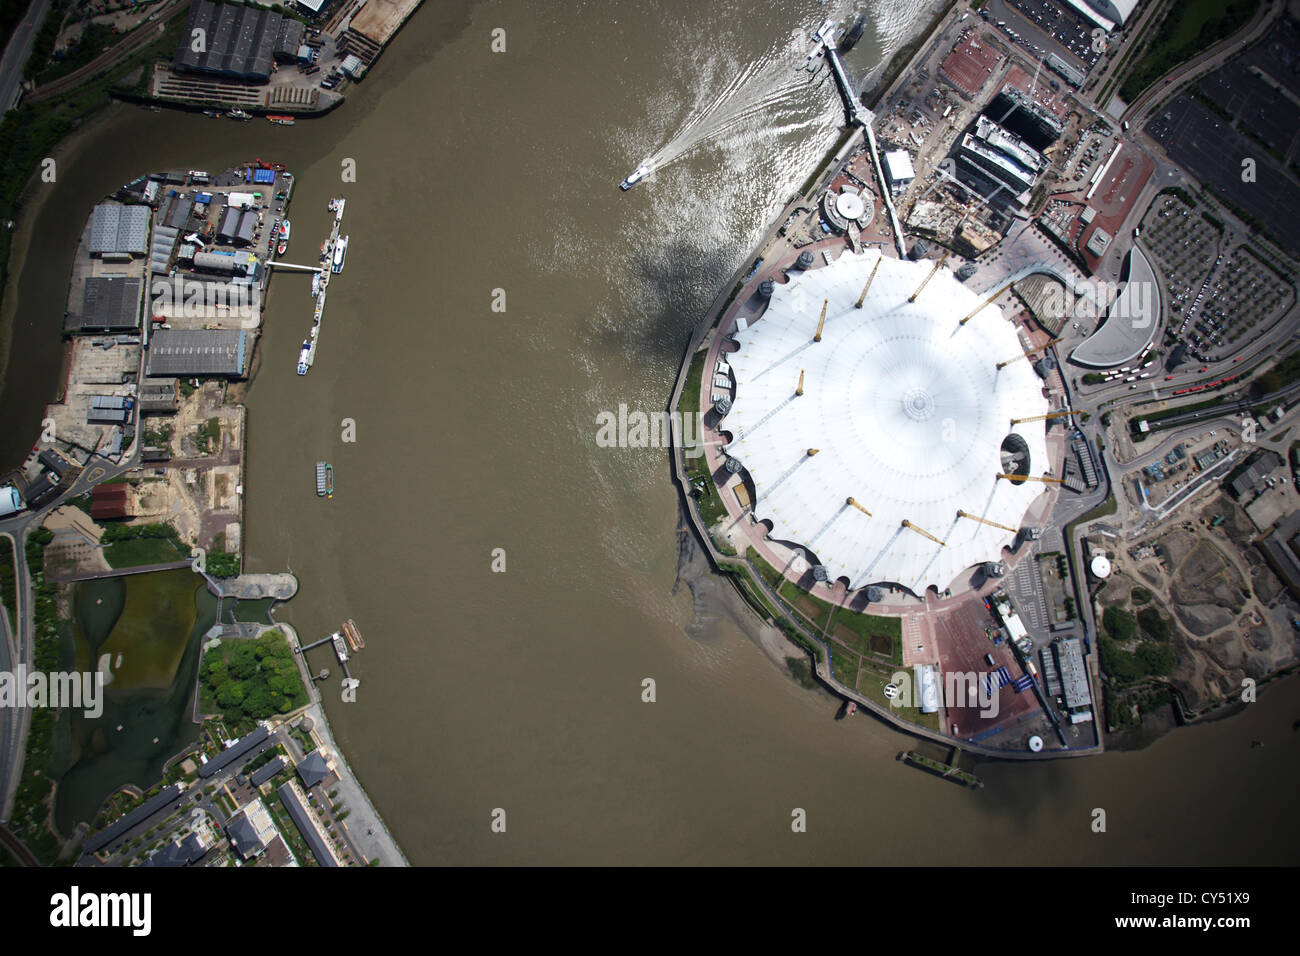 Aerial view of O2 Arena on the River Thames, London Stock Photo